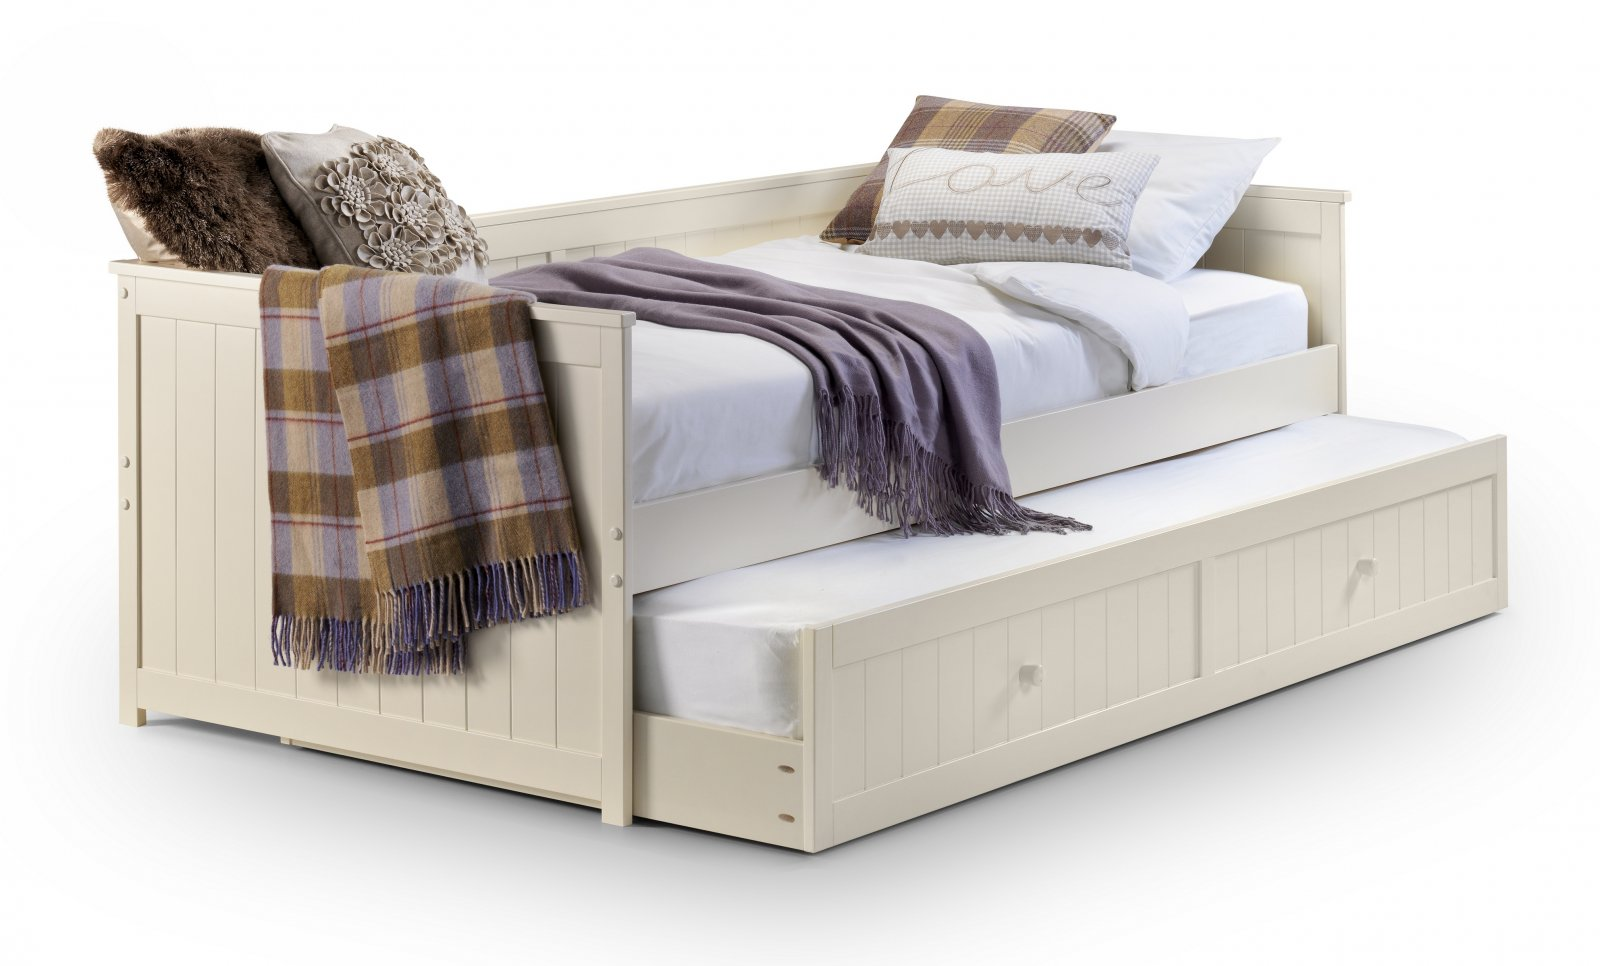 Childrens Beds With Pull Out Bed Underneath Gale S Julia Daybed With Underbed Trundle Kendal Bed Centre